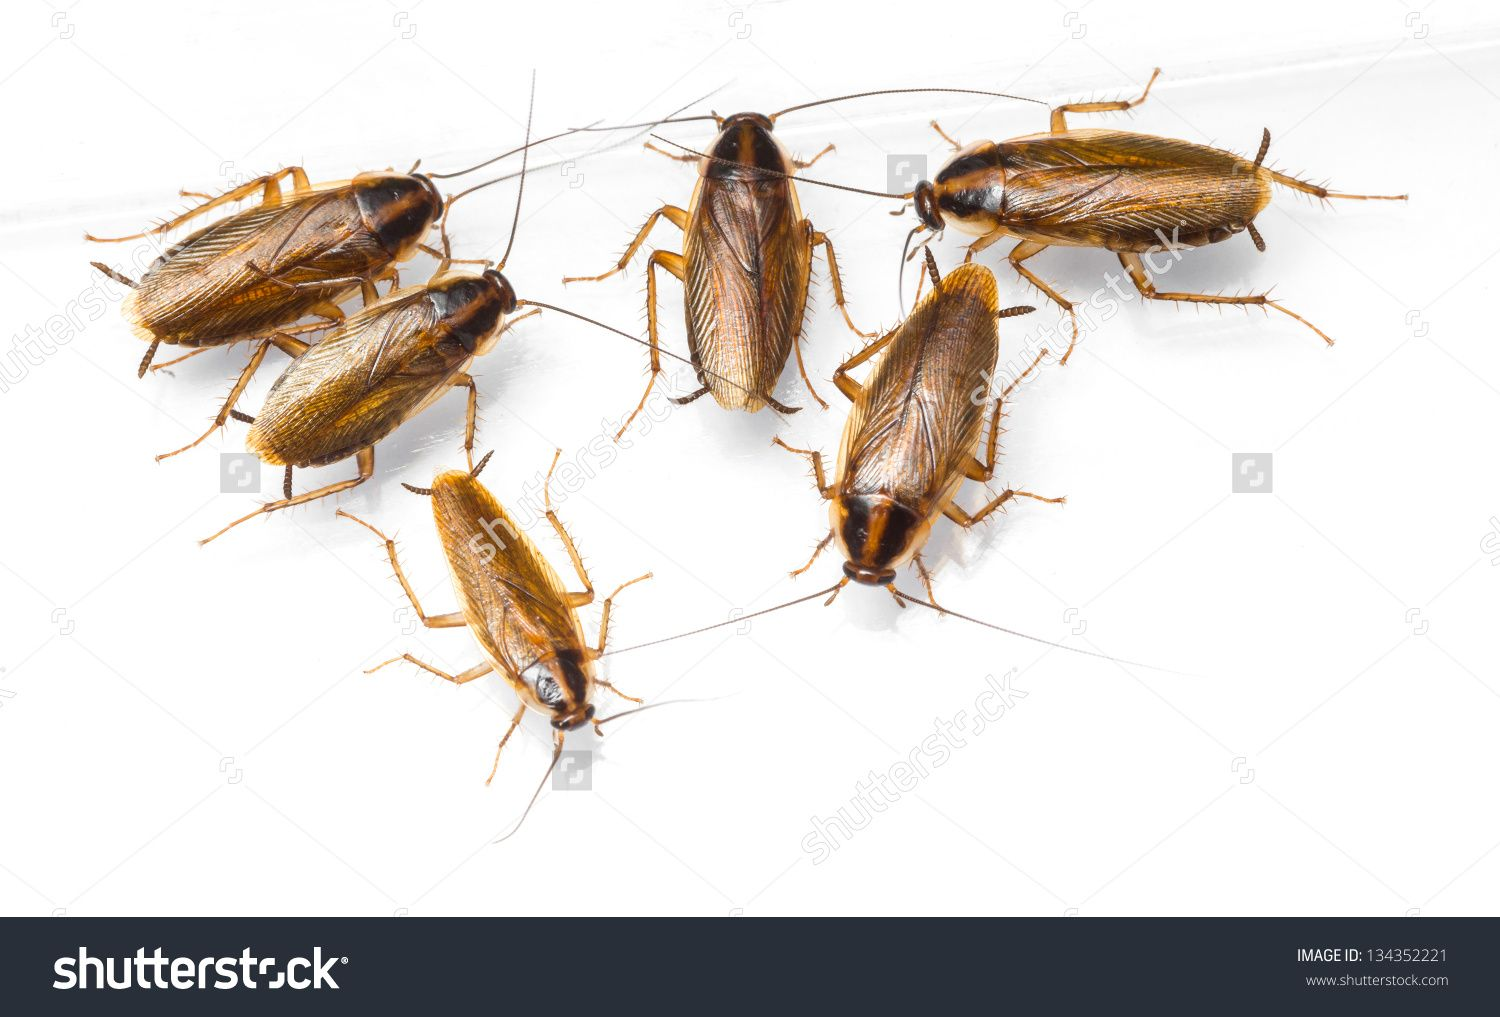 Close Up Blattella Germanica German Cockroach Isolated On White